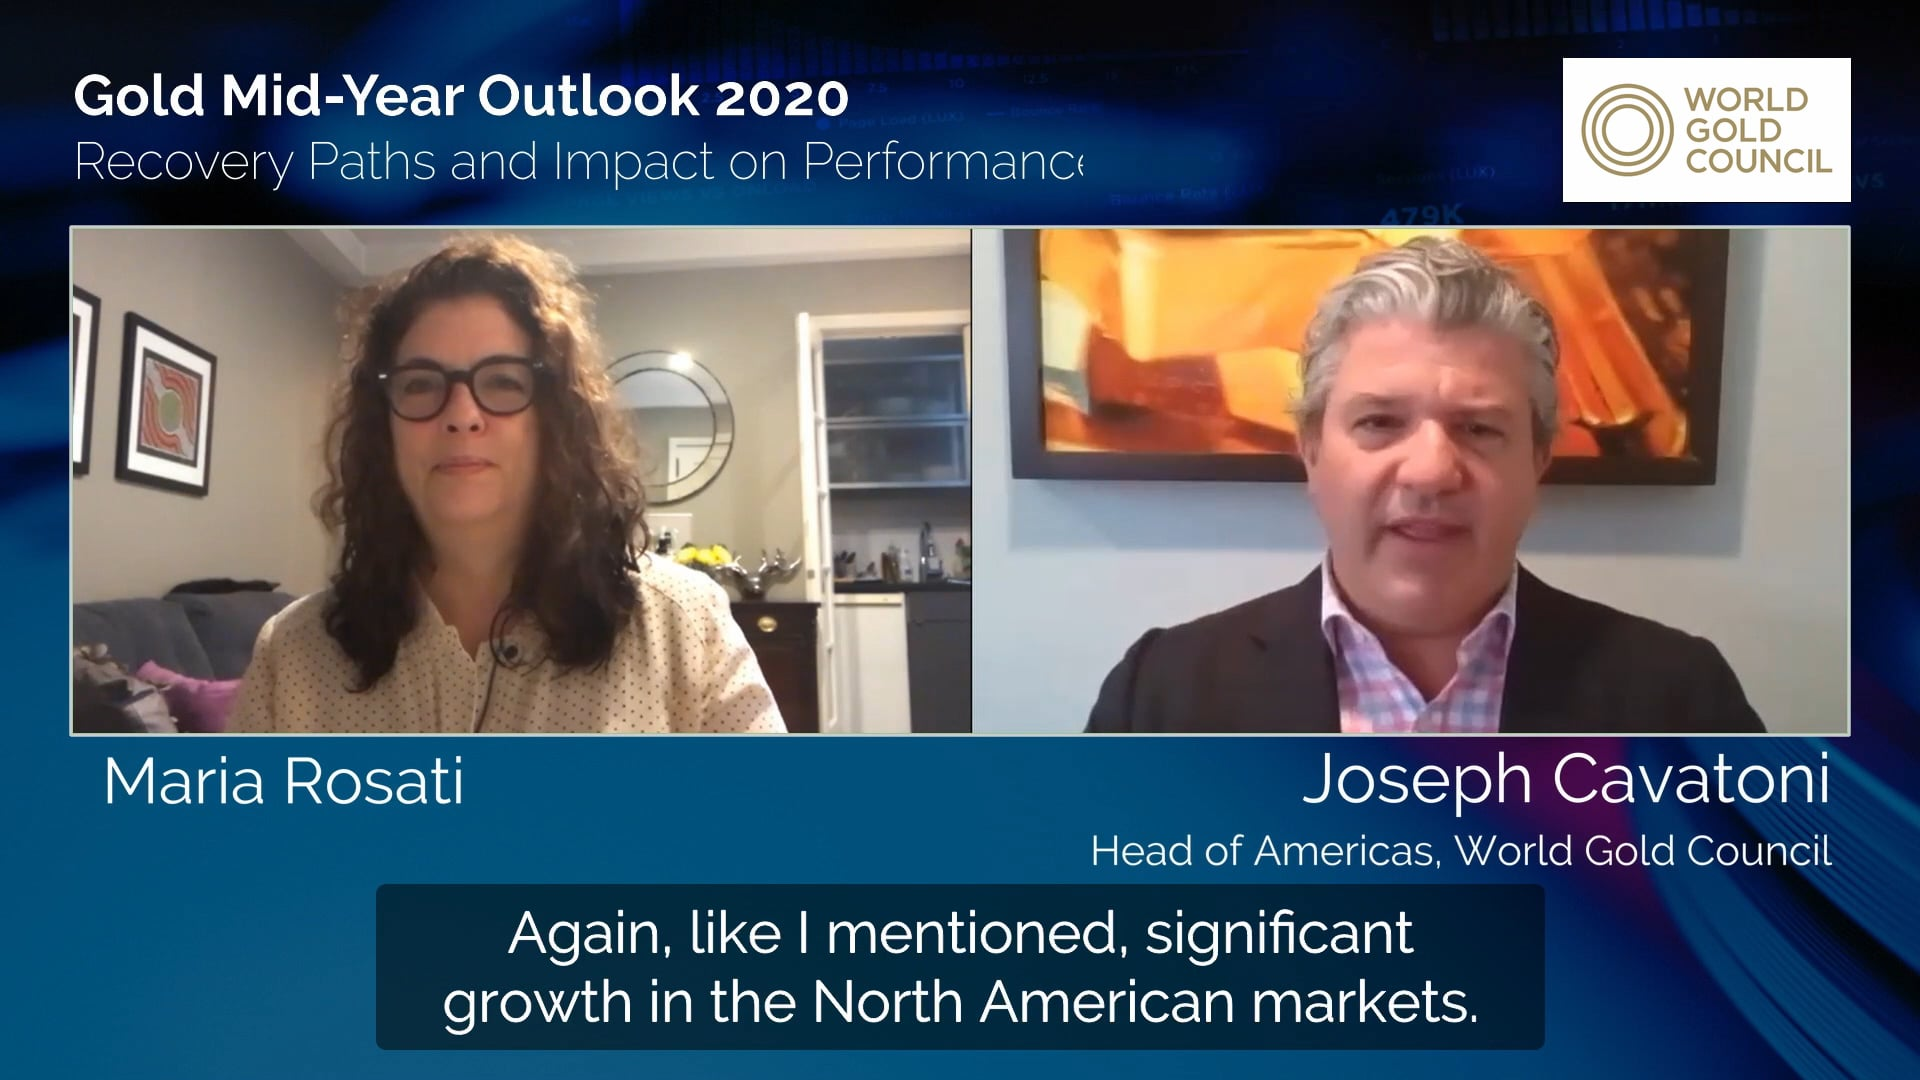 WealthManagement - Gold Mid-Year Outlook 2020